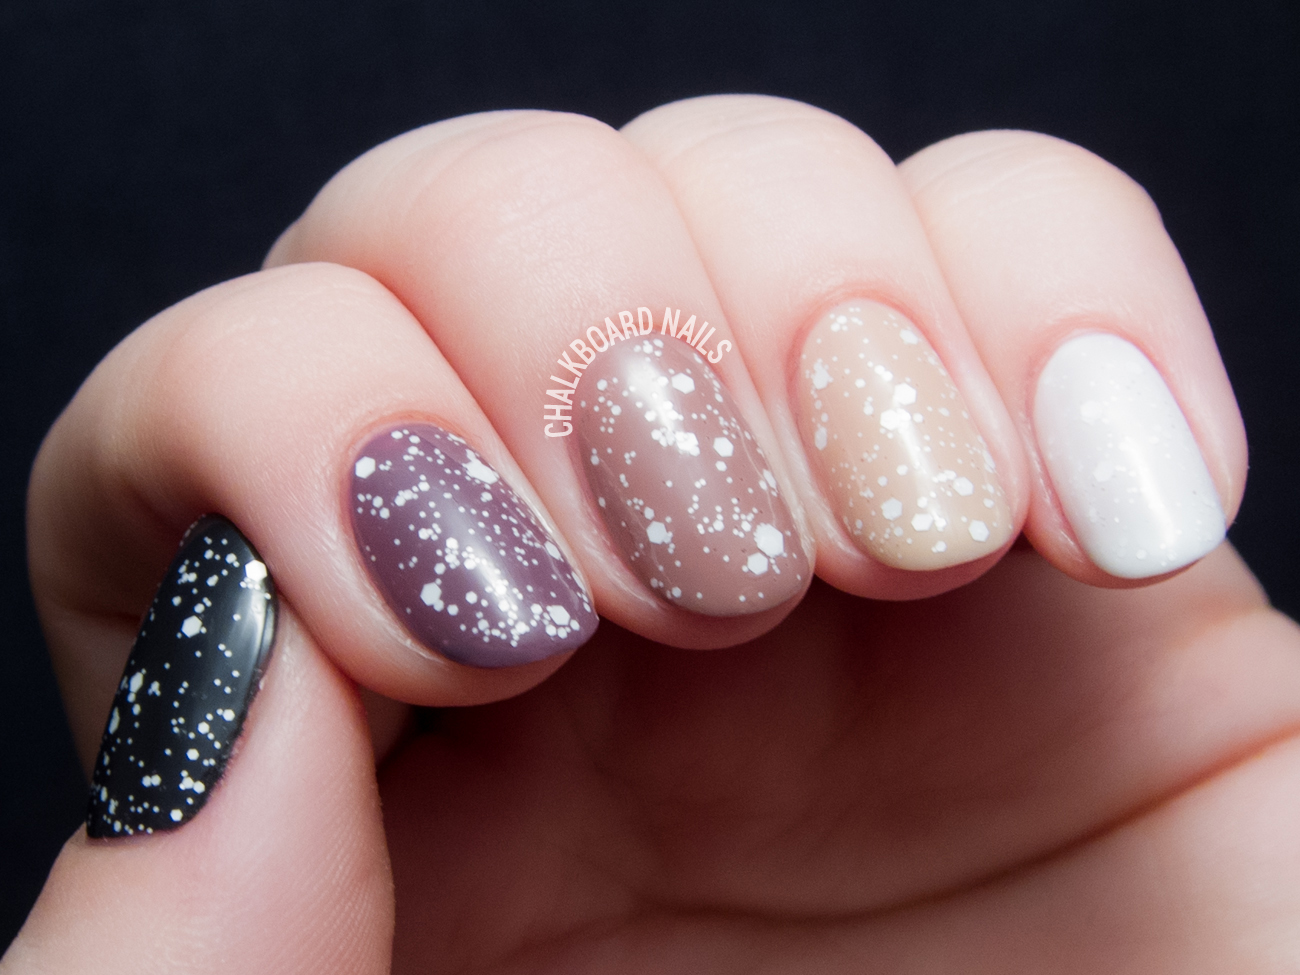 Ombre nails with lace glitter by @chalkboardnails